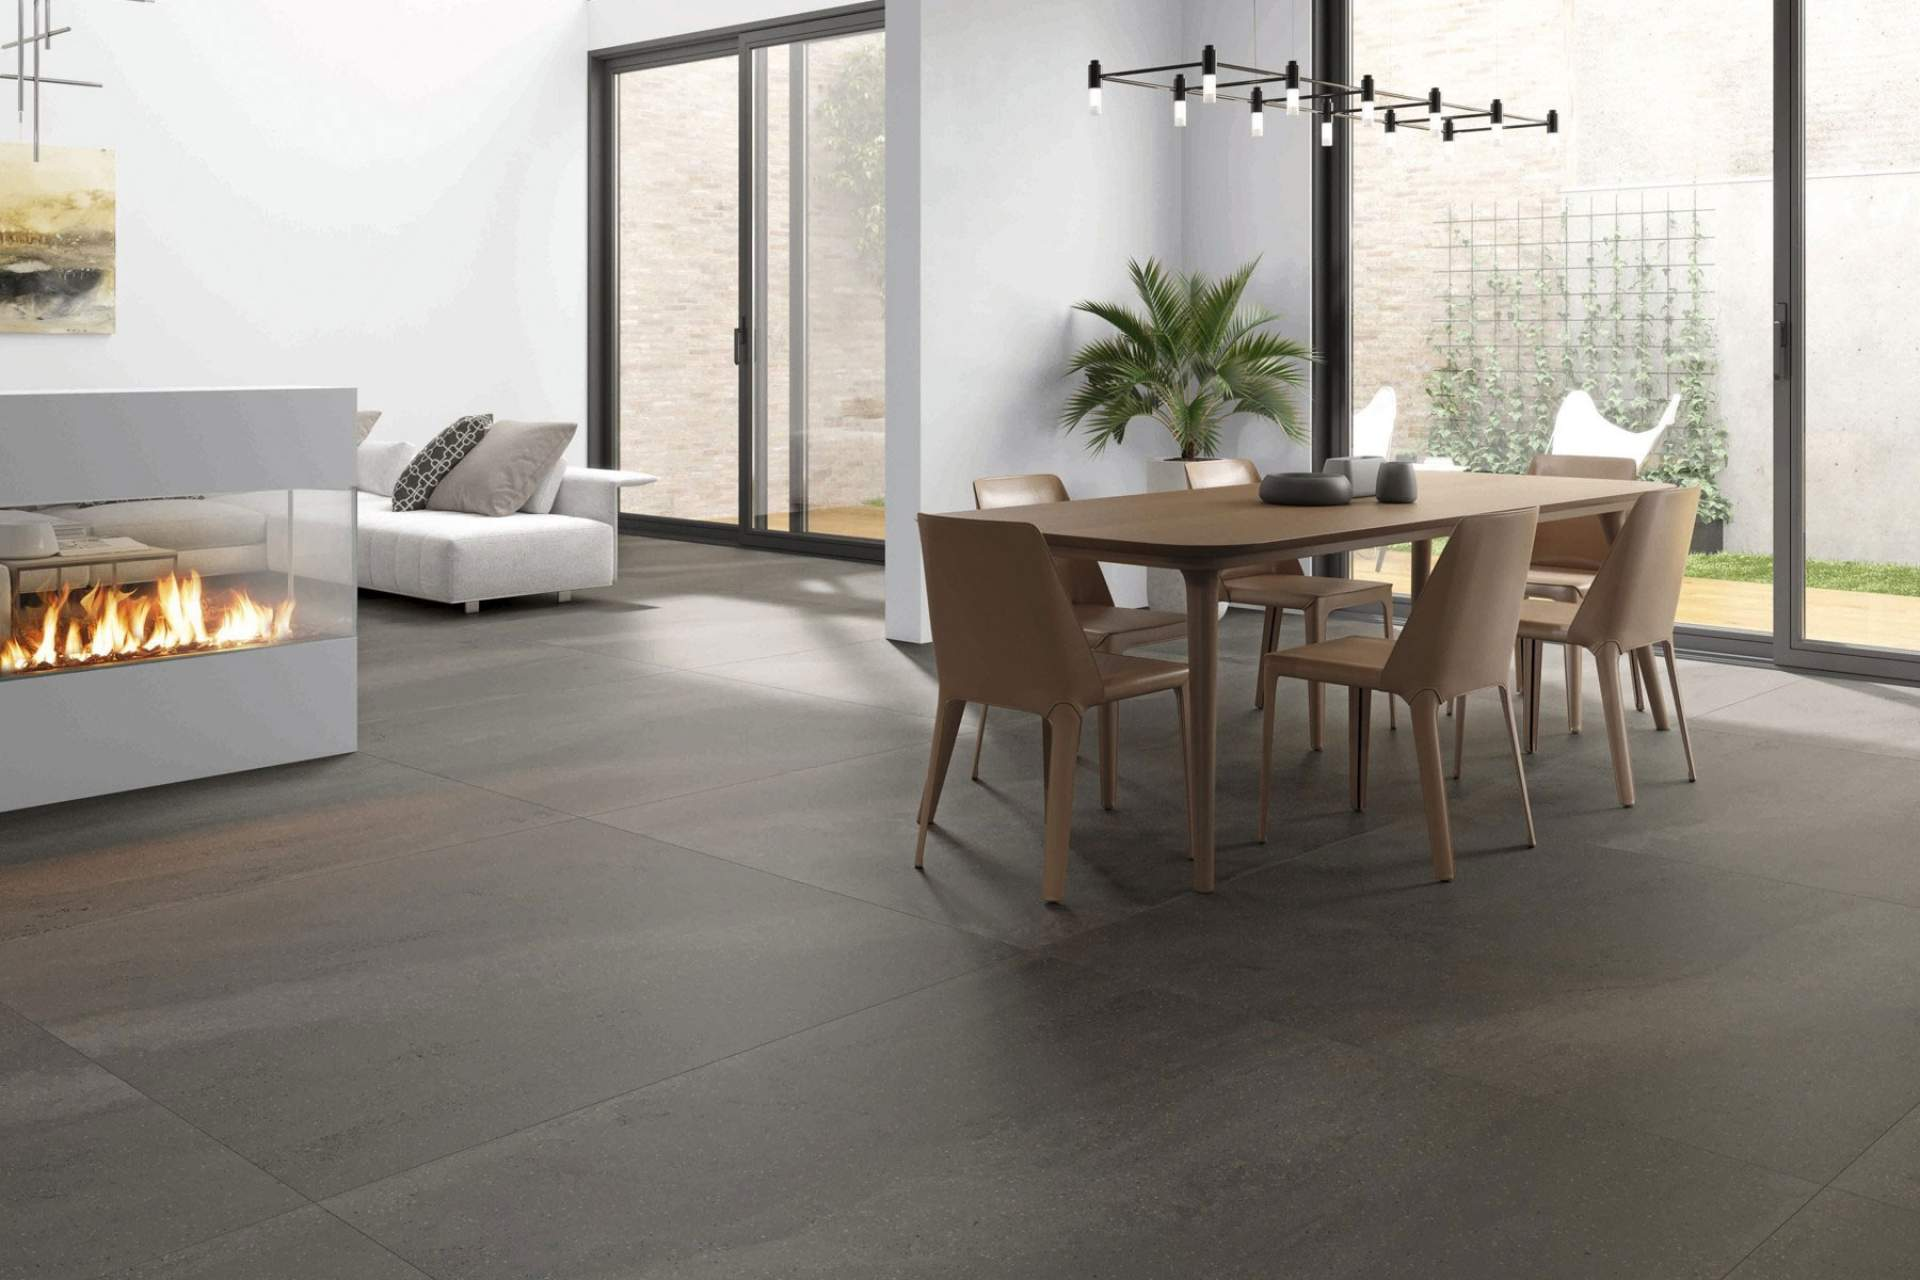 Fusion open plan setting using grey natural tile